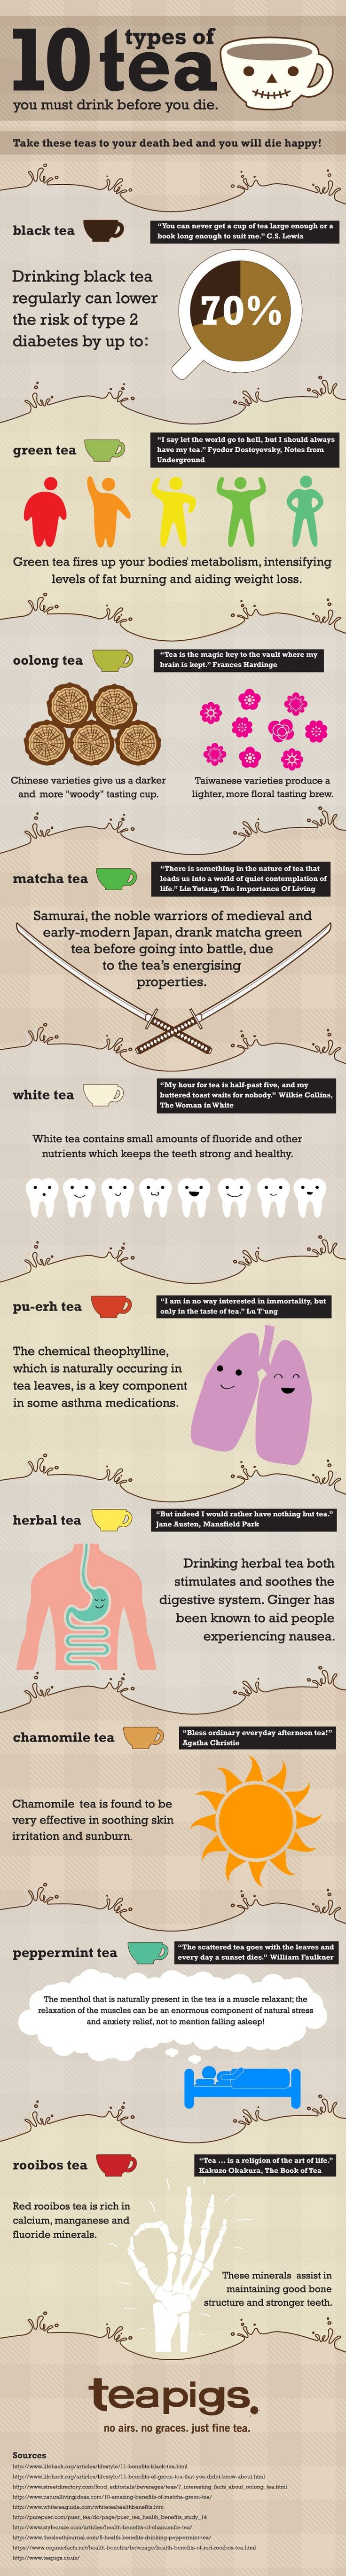 Drink these teas and you will die happy!.Great for the mind, soul and body.Drinking tea provides a host of health benefits.Tea is good for the immune system, low in fat and great for weight loss. #infographic